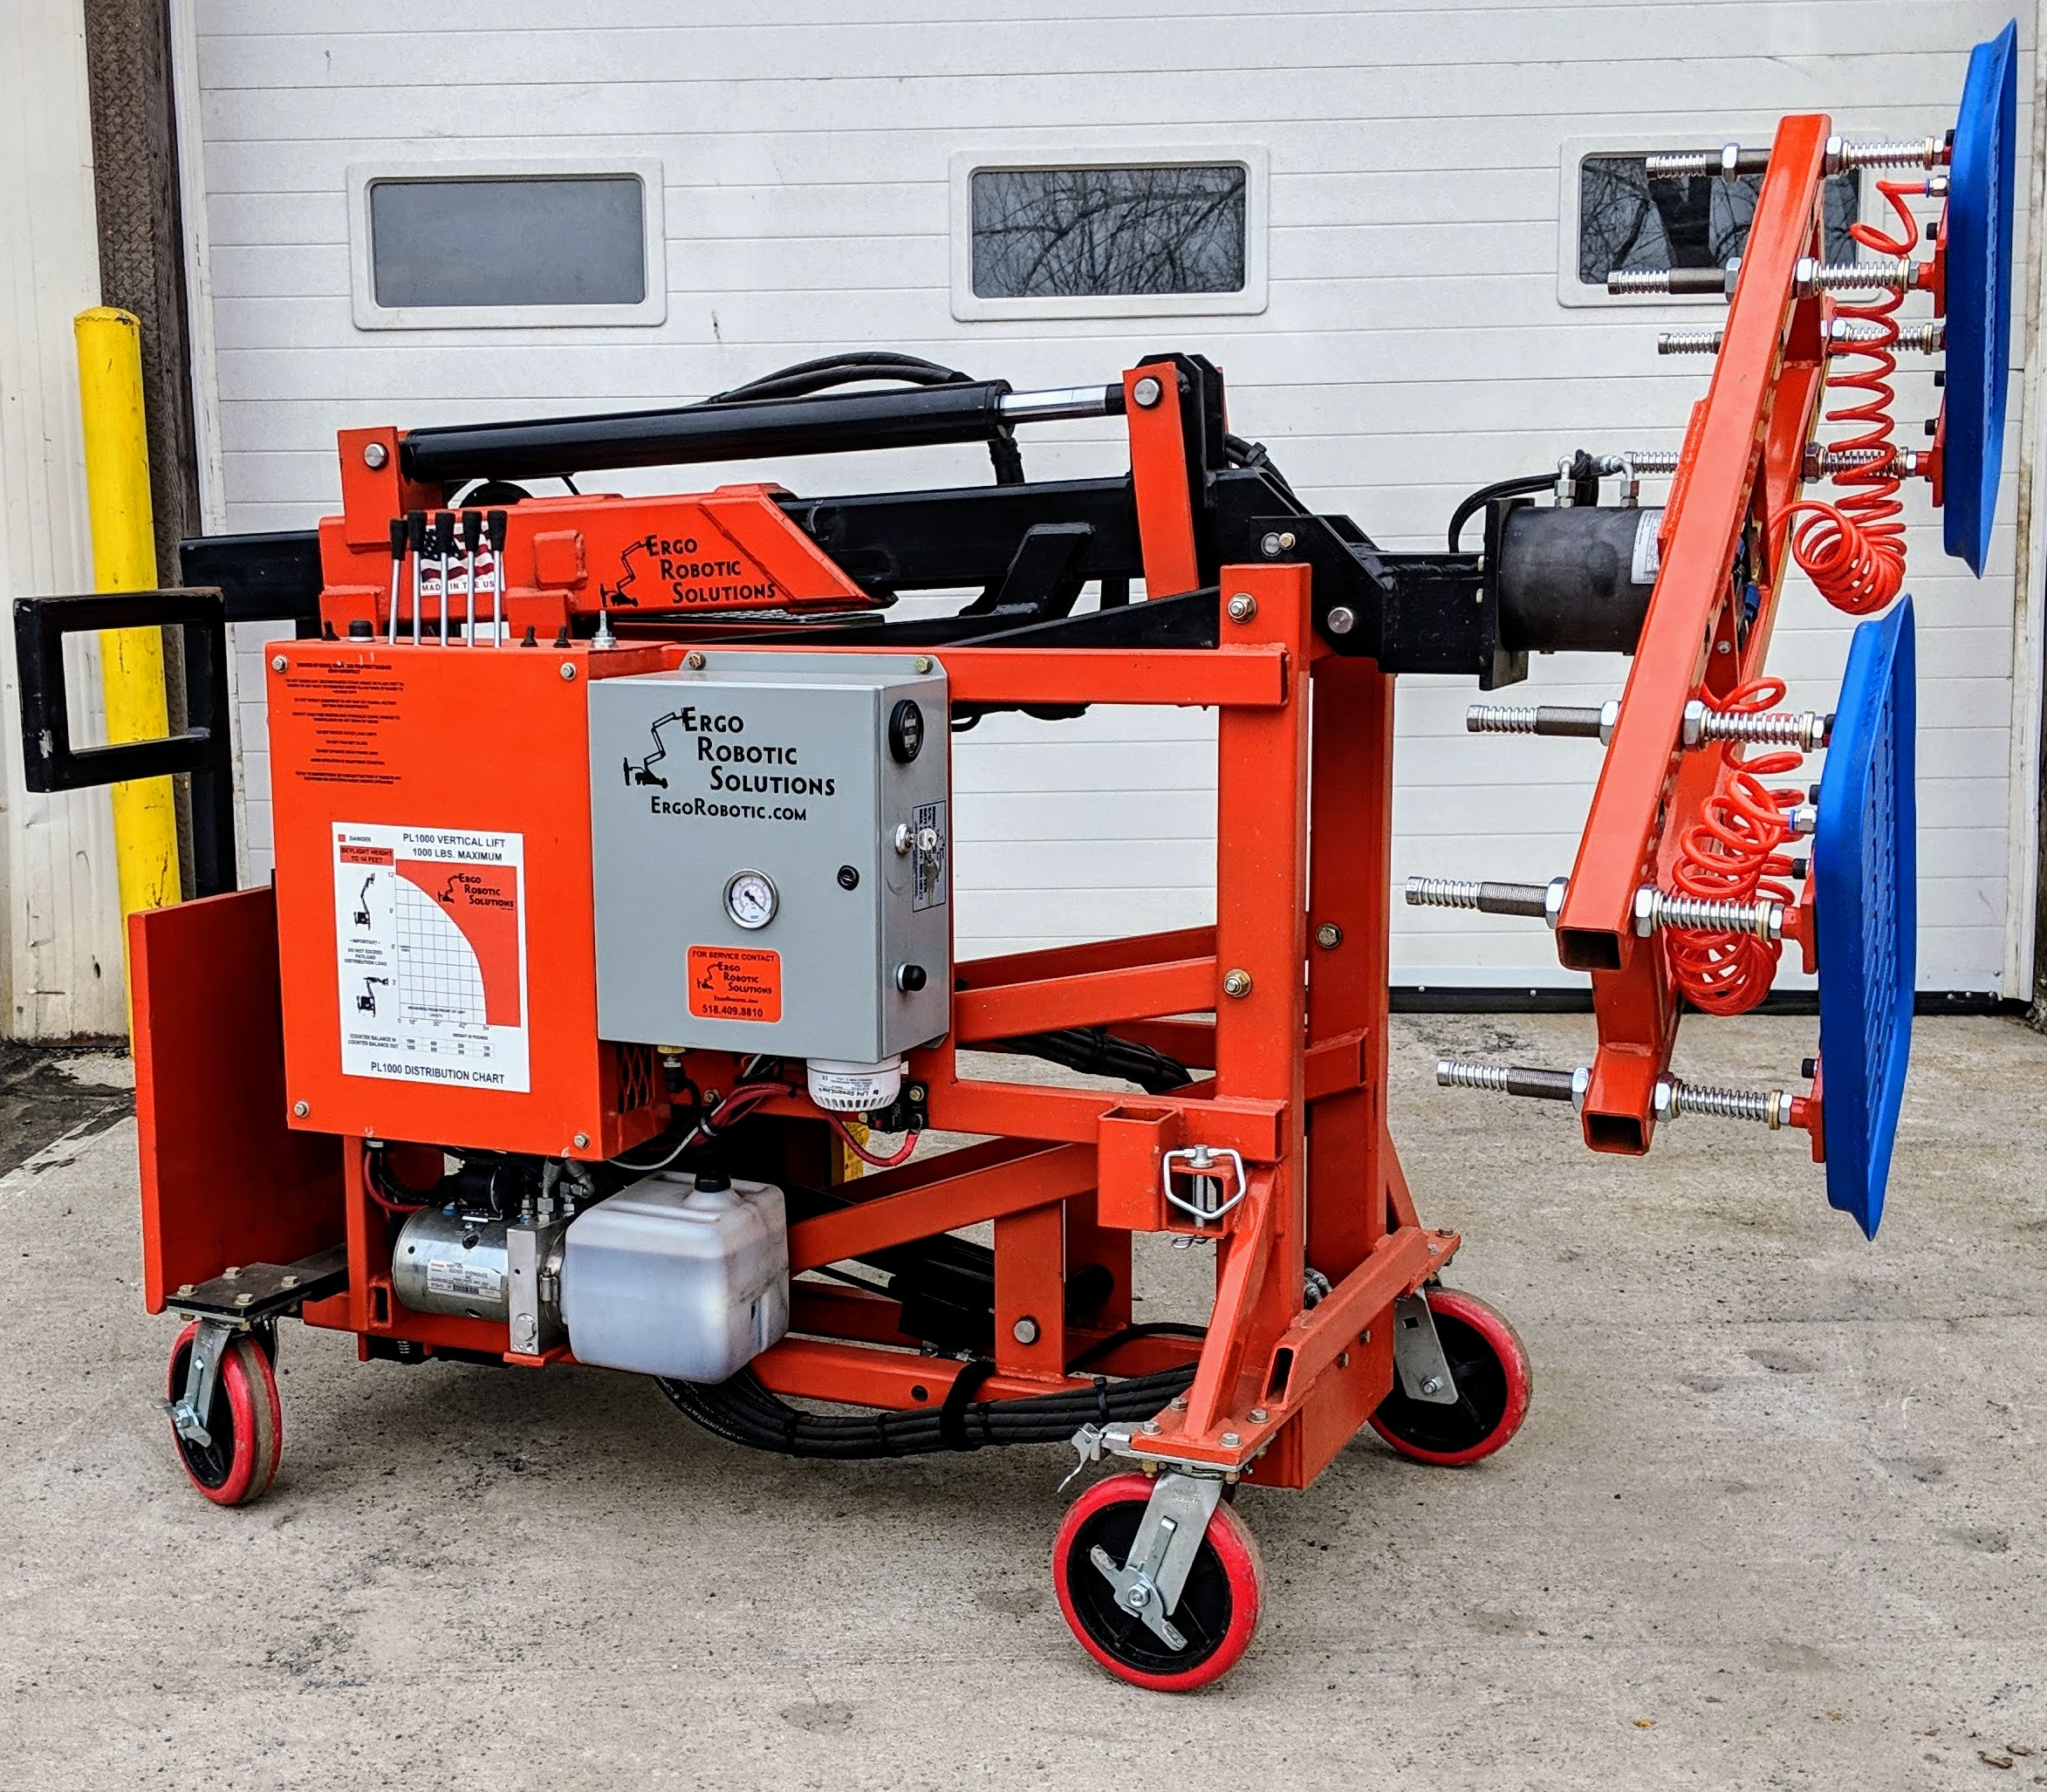 Orange Ergo Robotic Solutions Glazing Robot PL1000 with cups mounted.